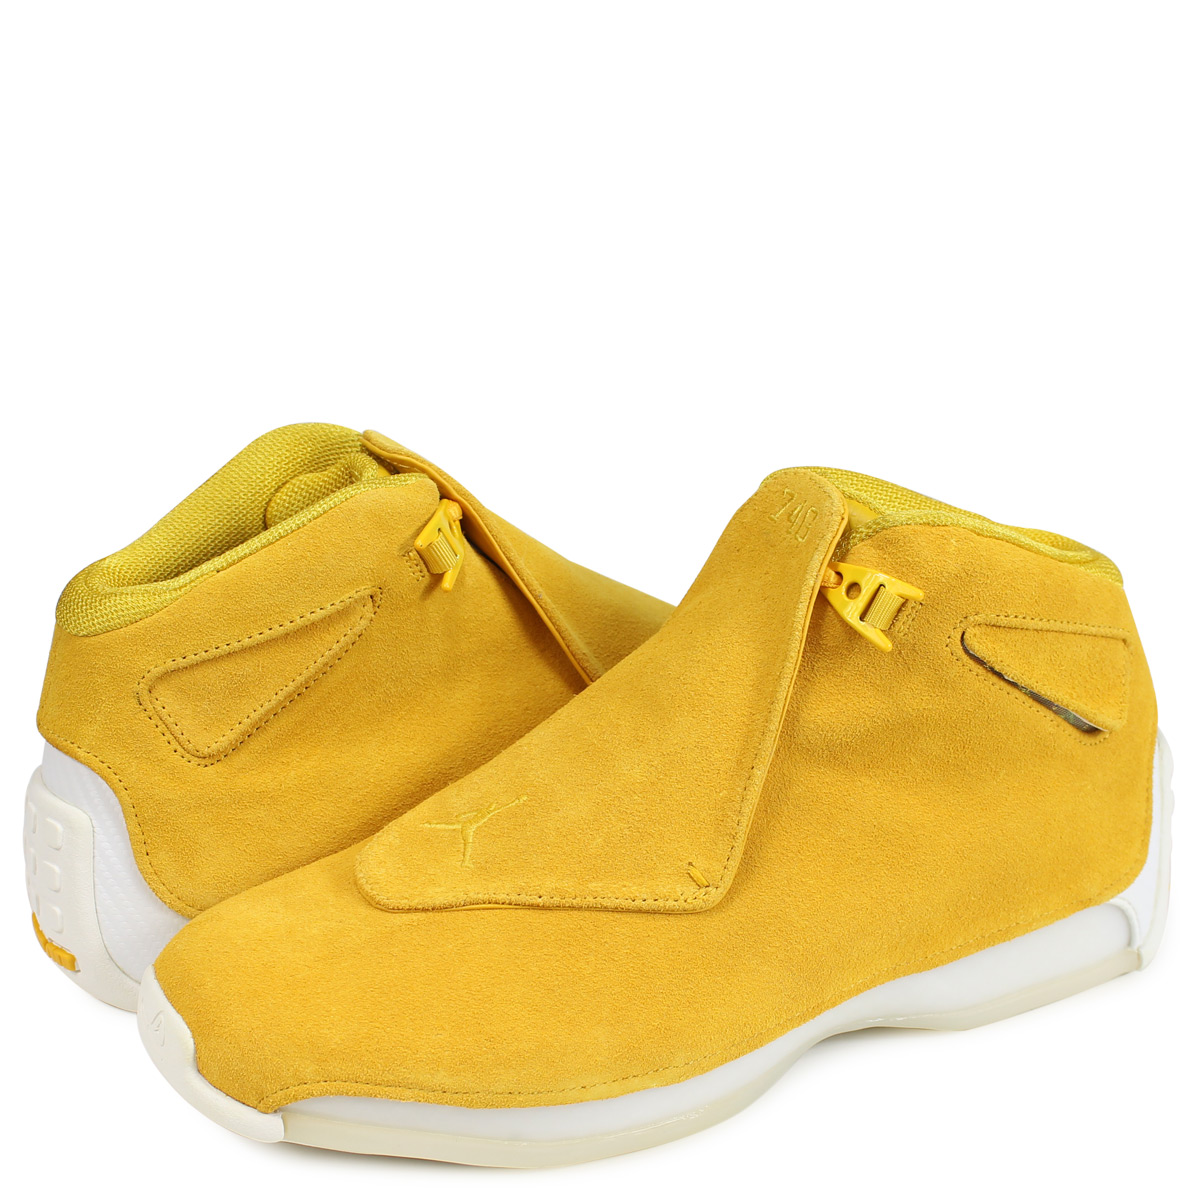 54721cb6f35370 Nike NIKE Air Jordan 18 nostalgic sneakers men AIR JORDAN 18 RETRO yellow  AA2494-701